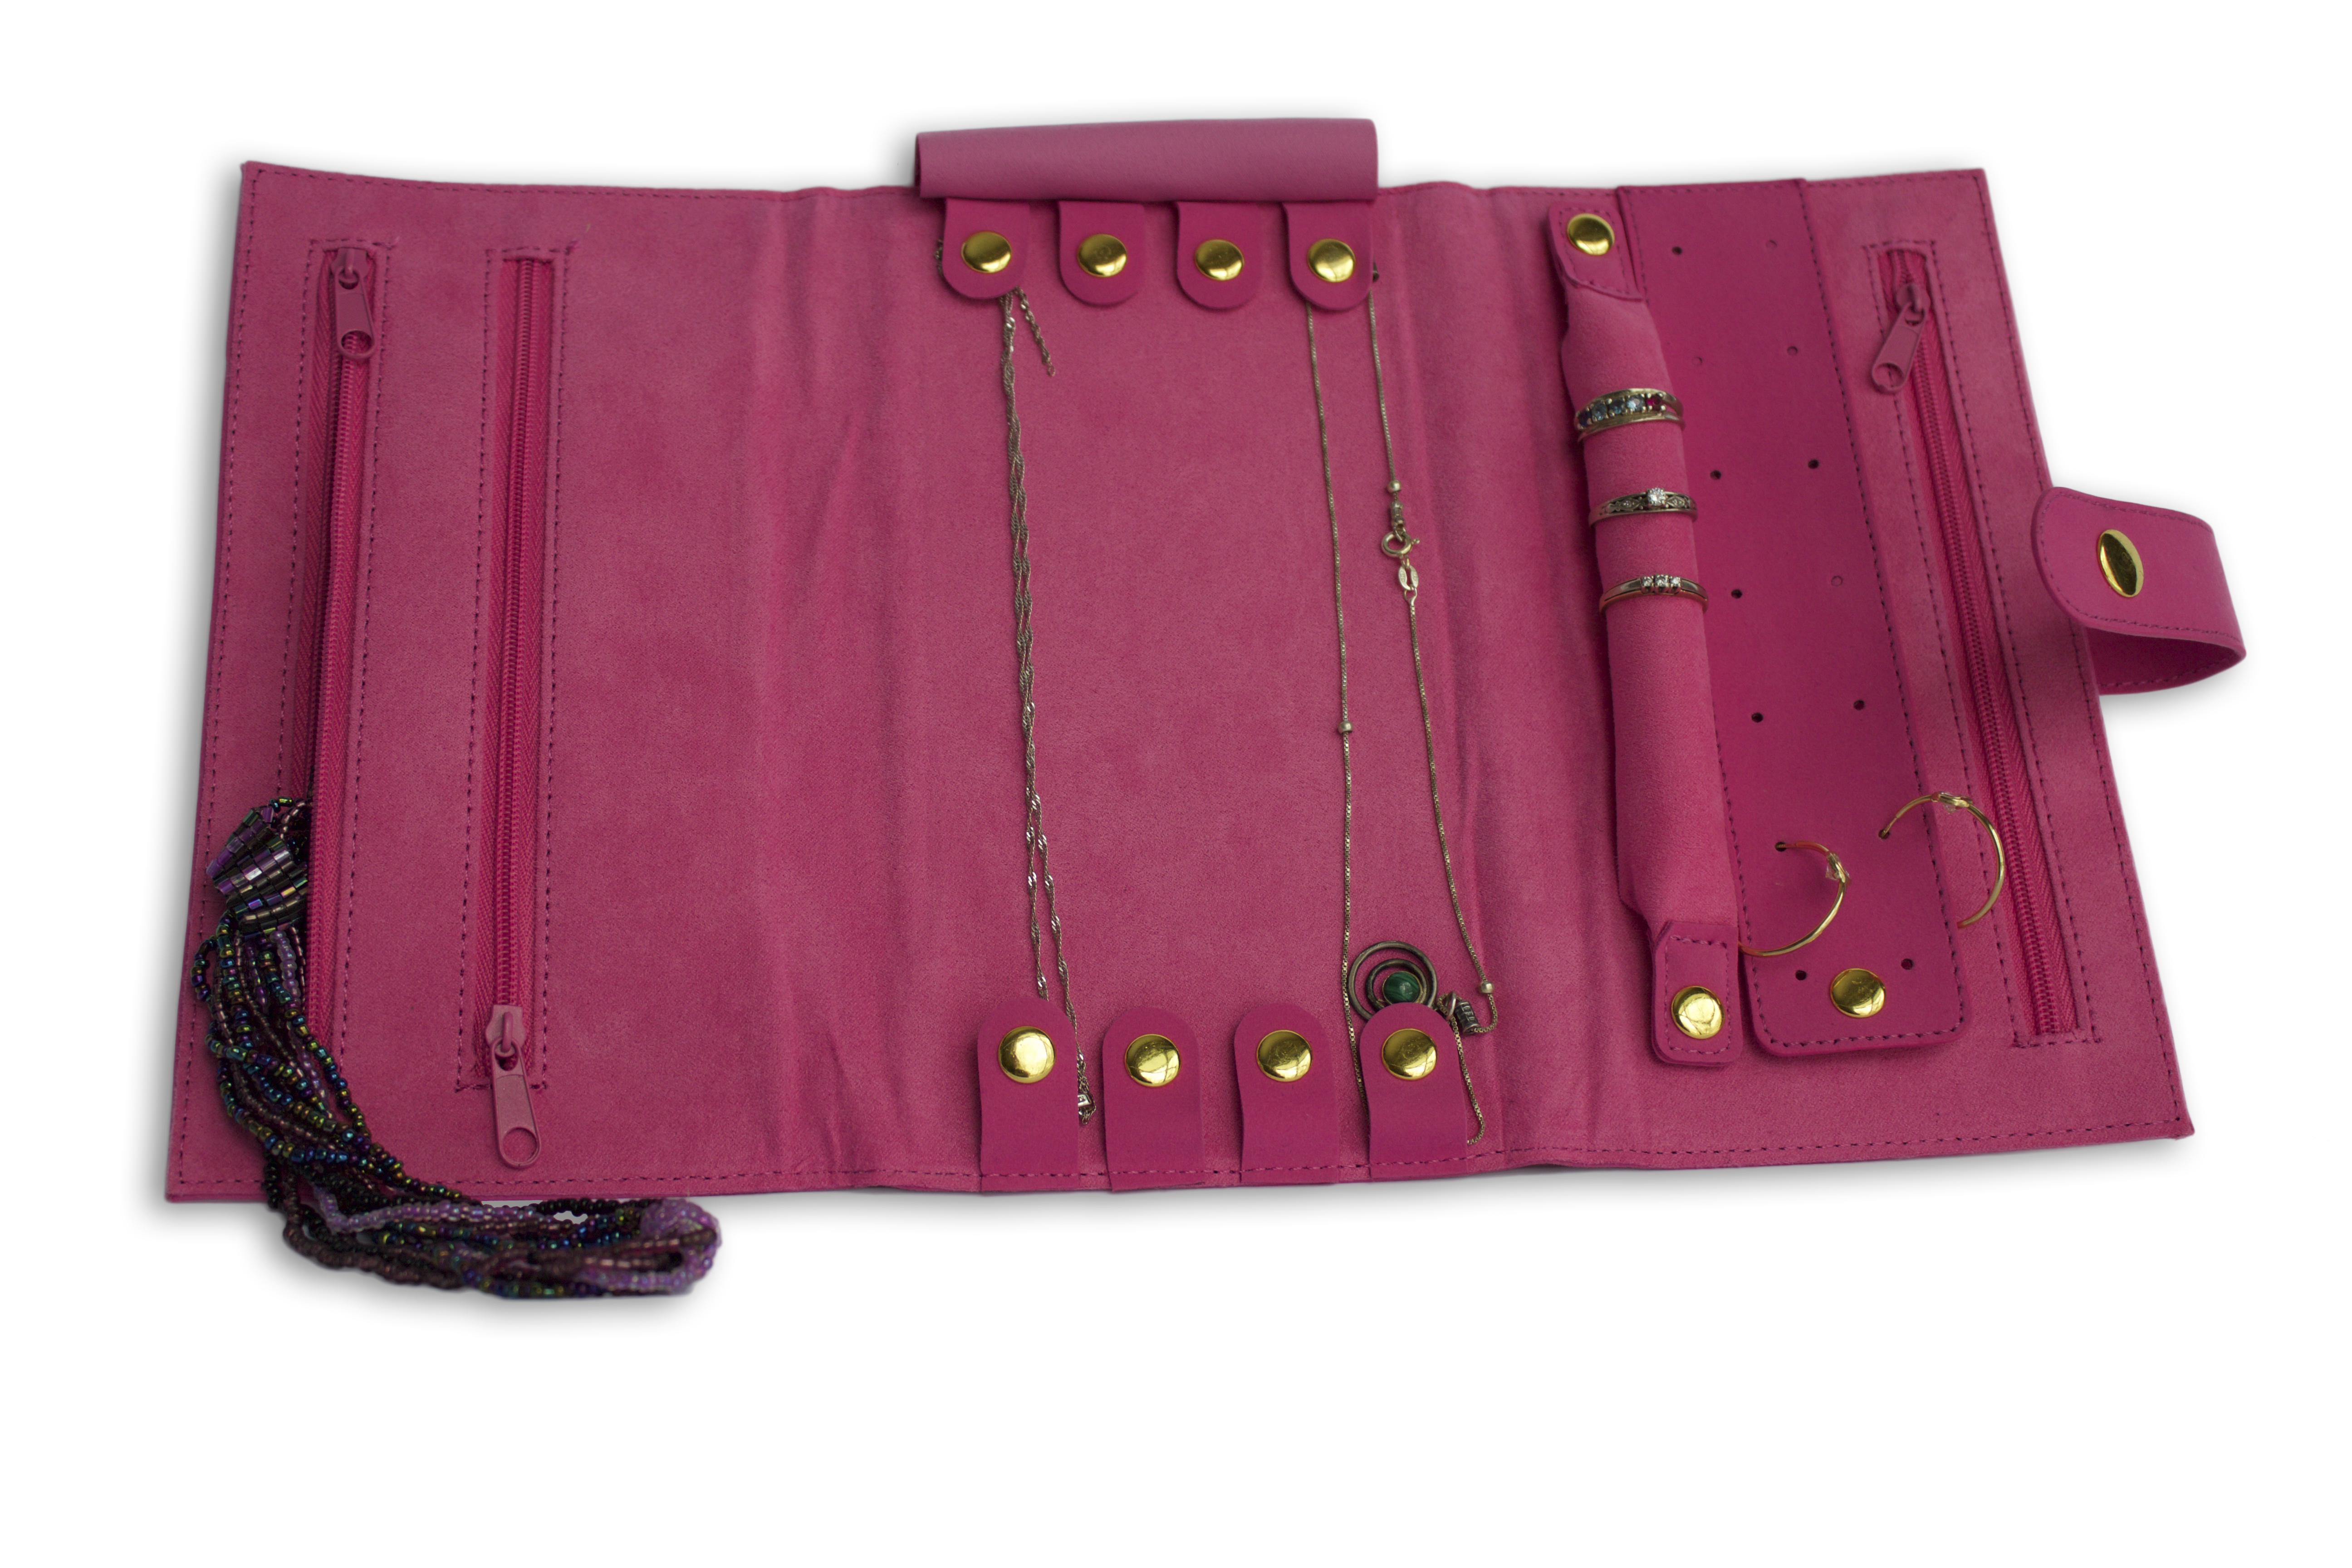 Jewelry Travel organizer by DK Styles Archives Susan Said WHAT